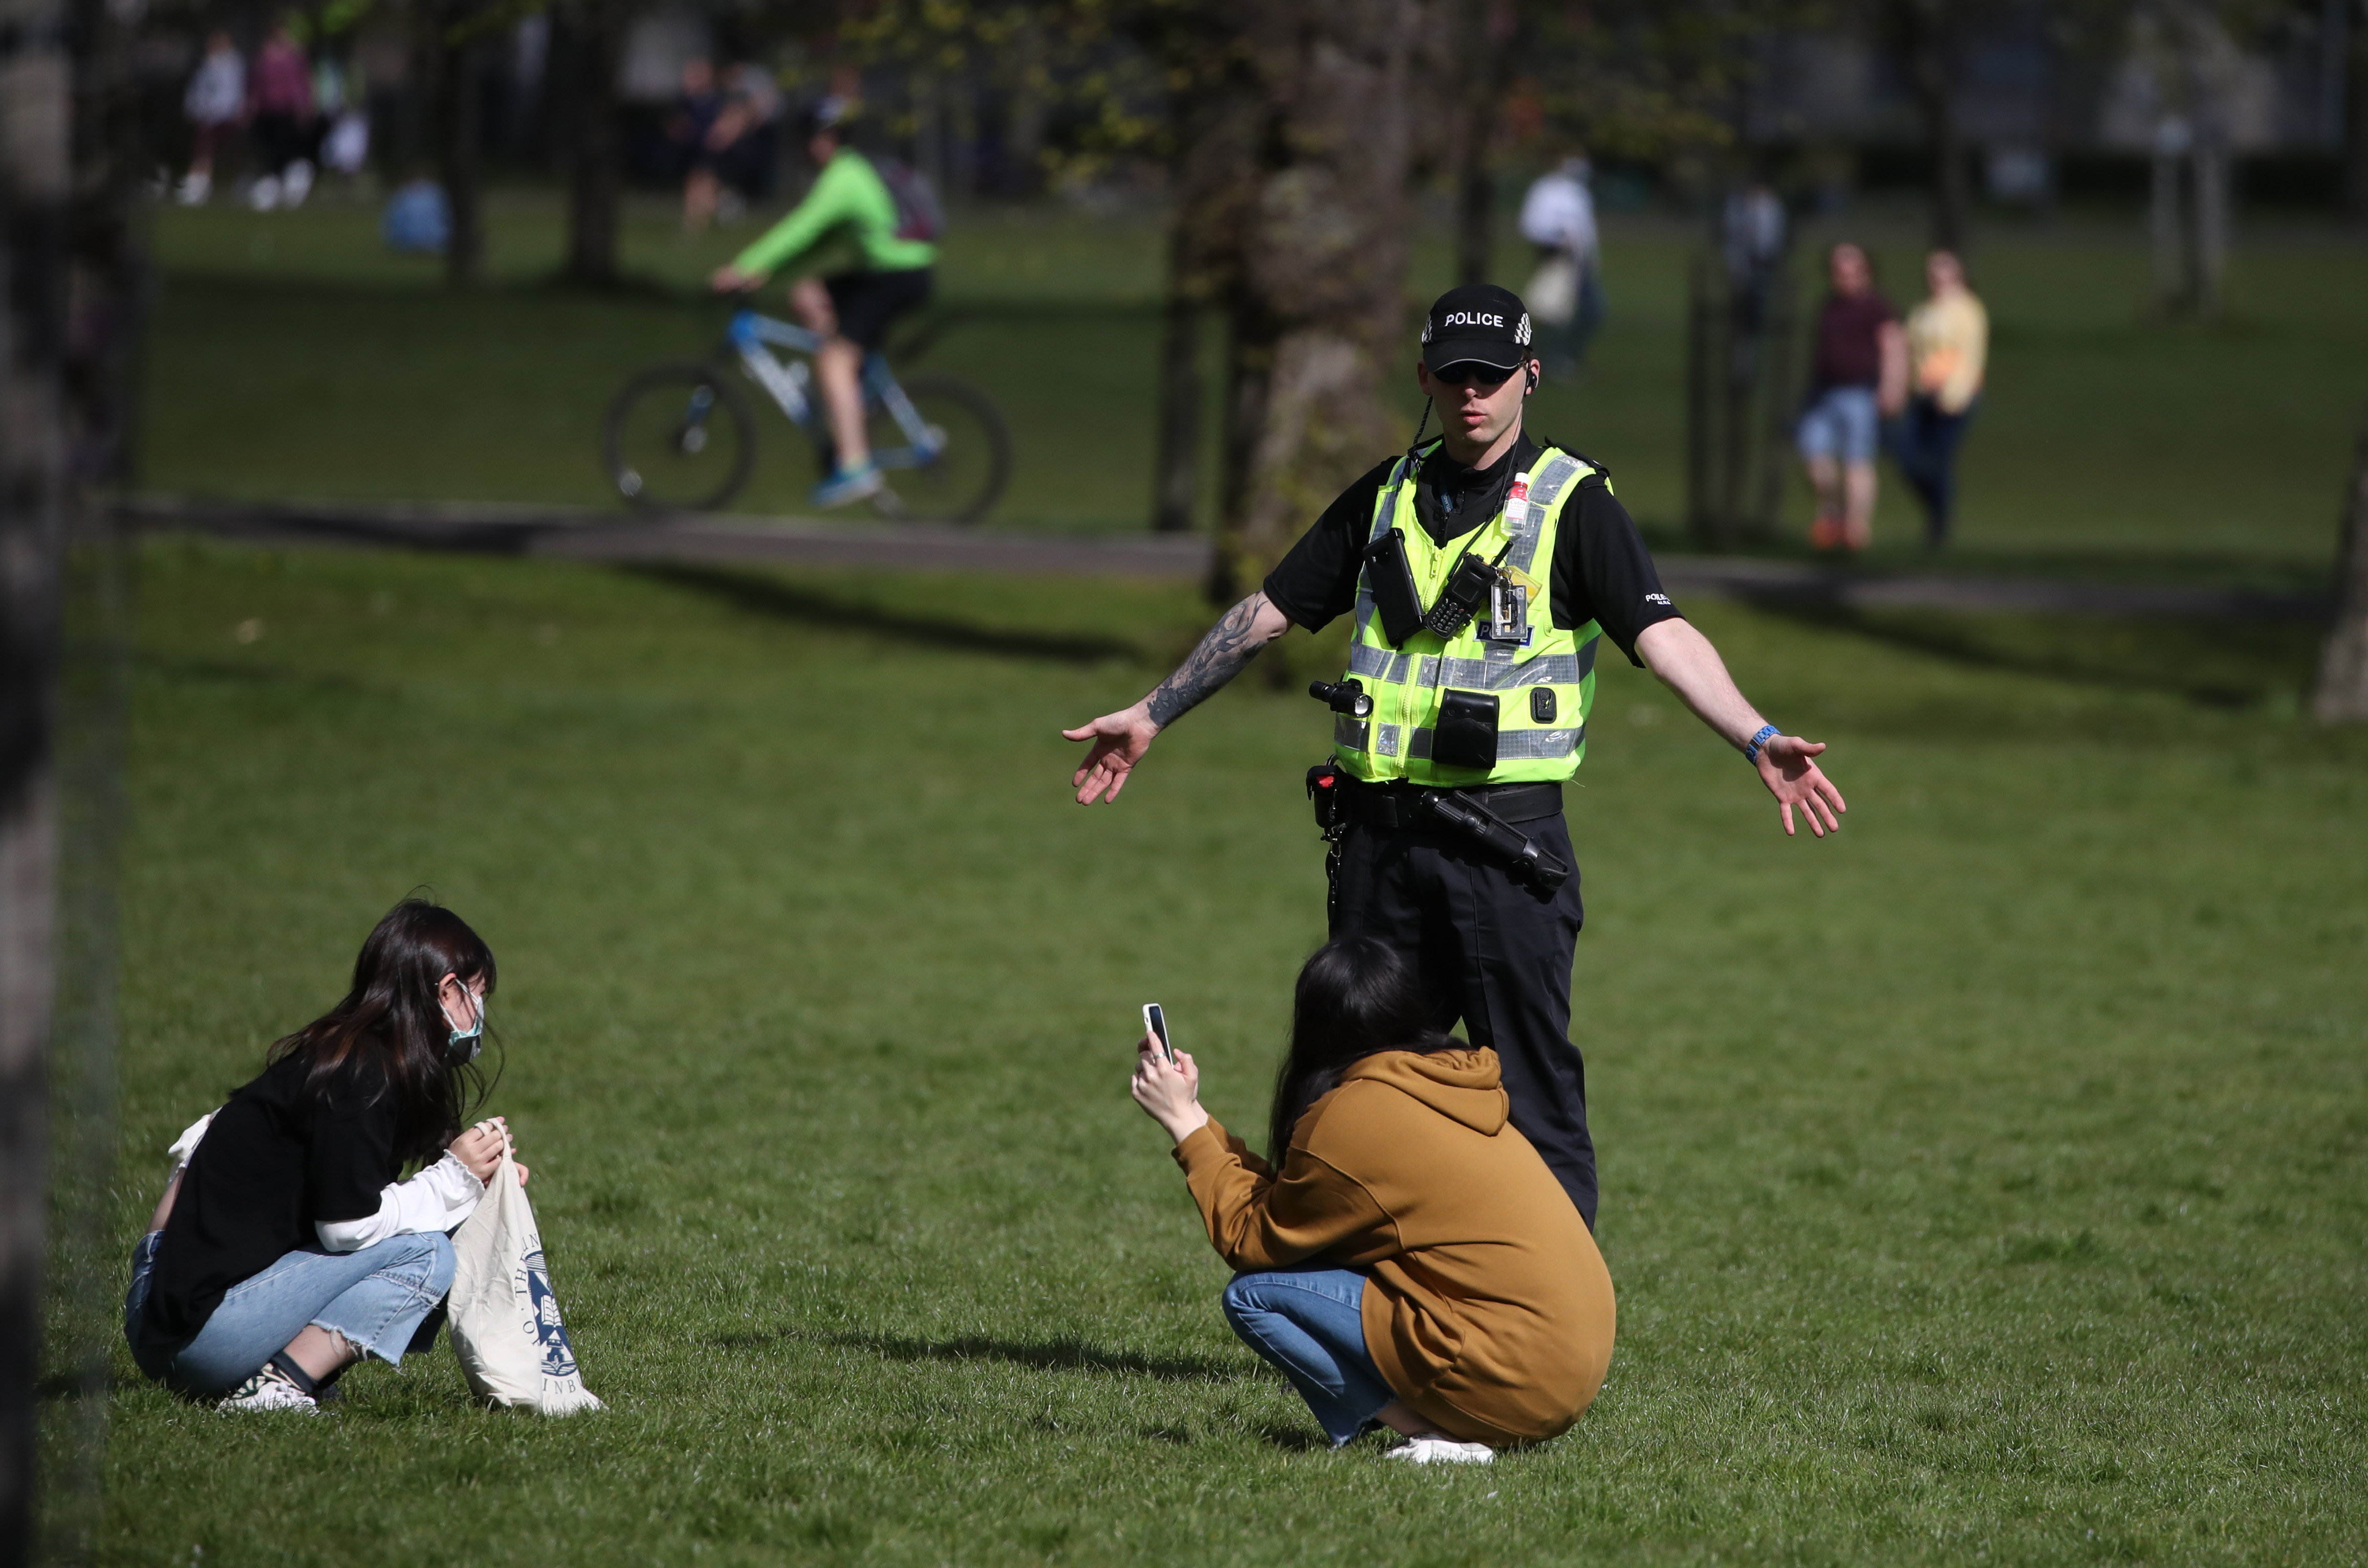 Police officers patrol in the Meadows in Edinburgh as the UK continues in lockdown to help curb the spread of the coronavirus.